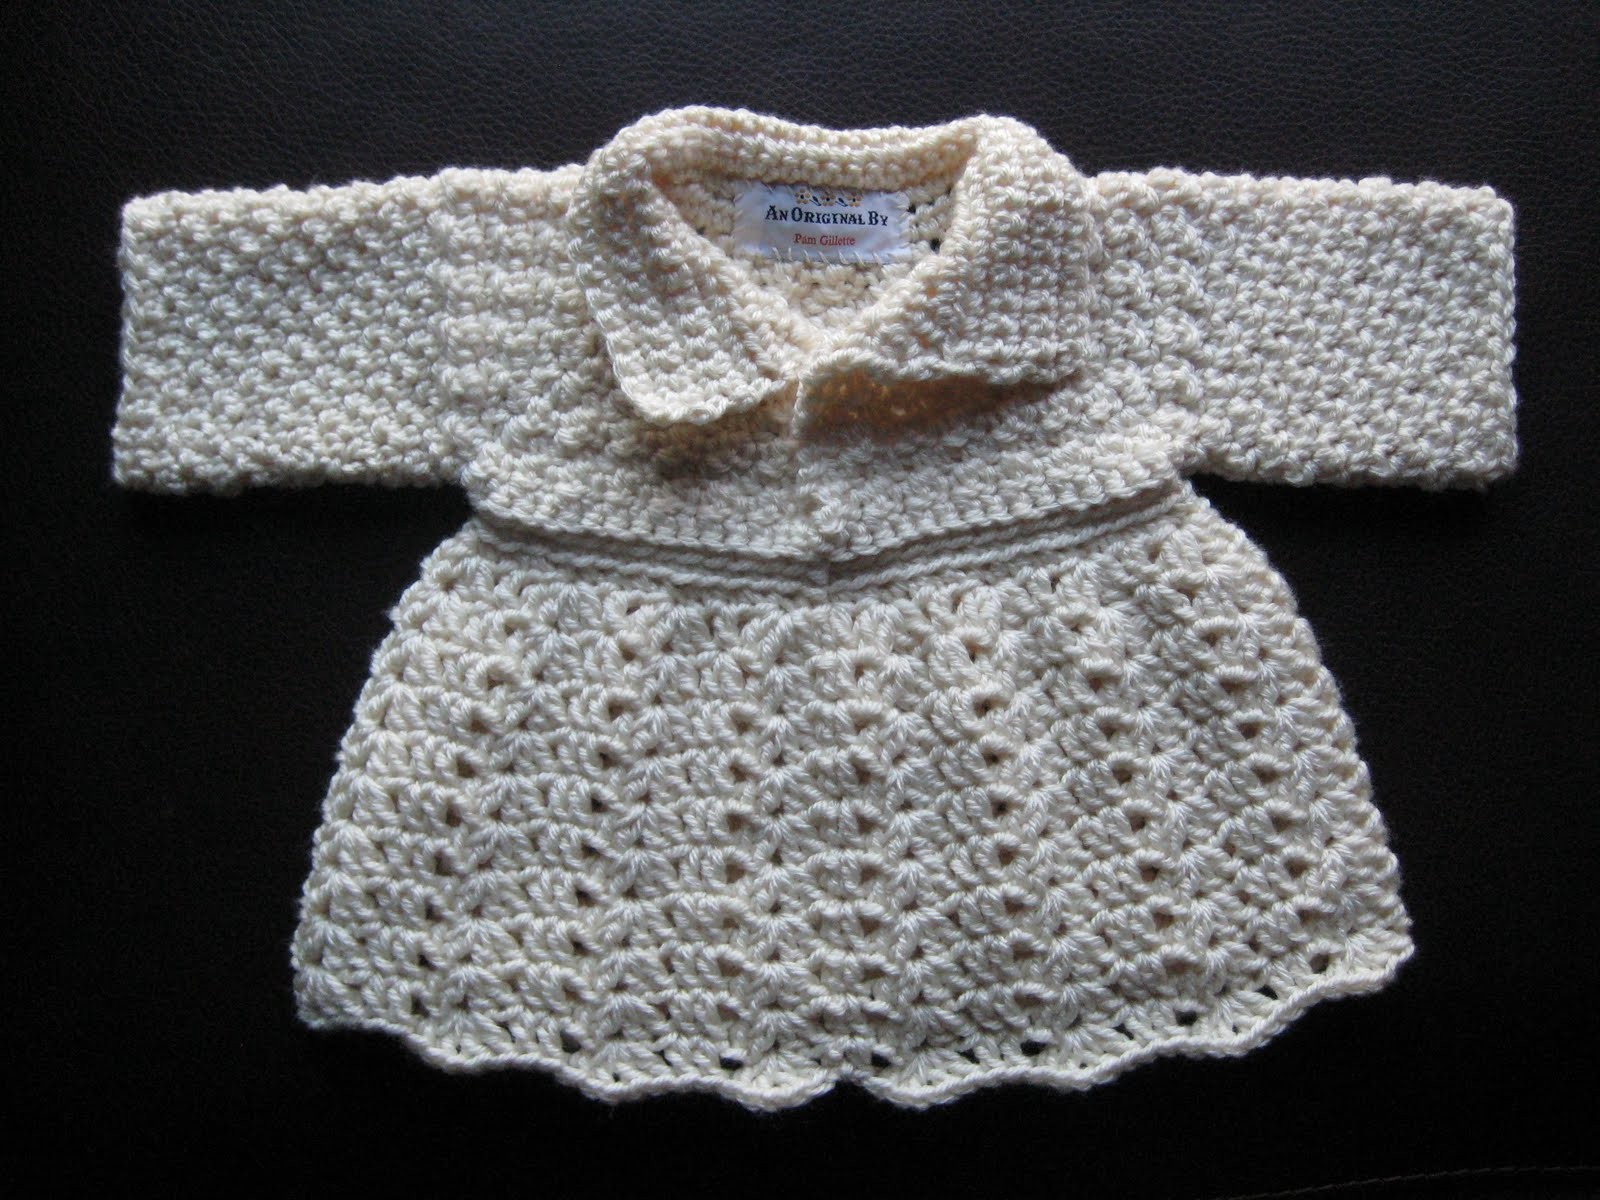 Crochet Baby Winter Dress Pattern : Crochet Pattern For Baby Winter Free Patterns For Crochet